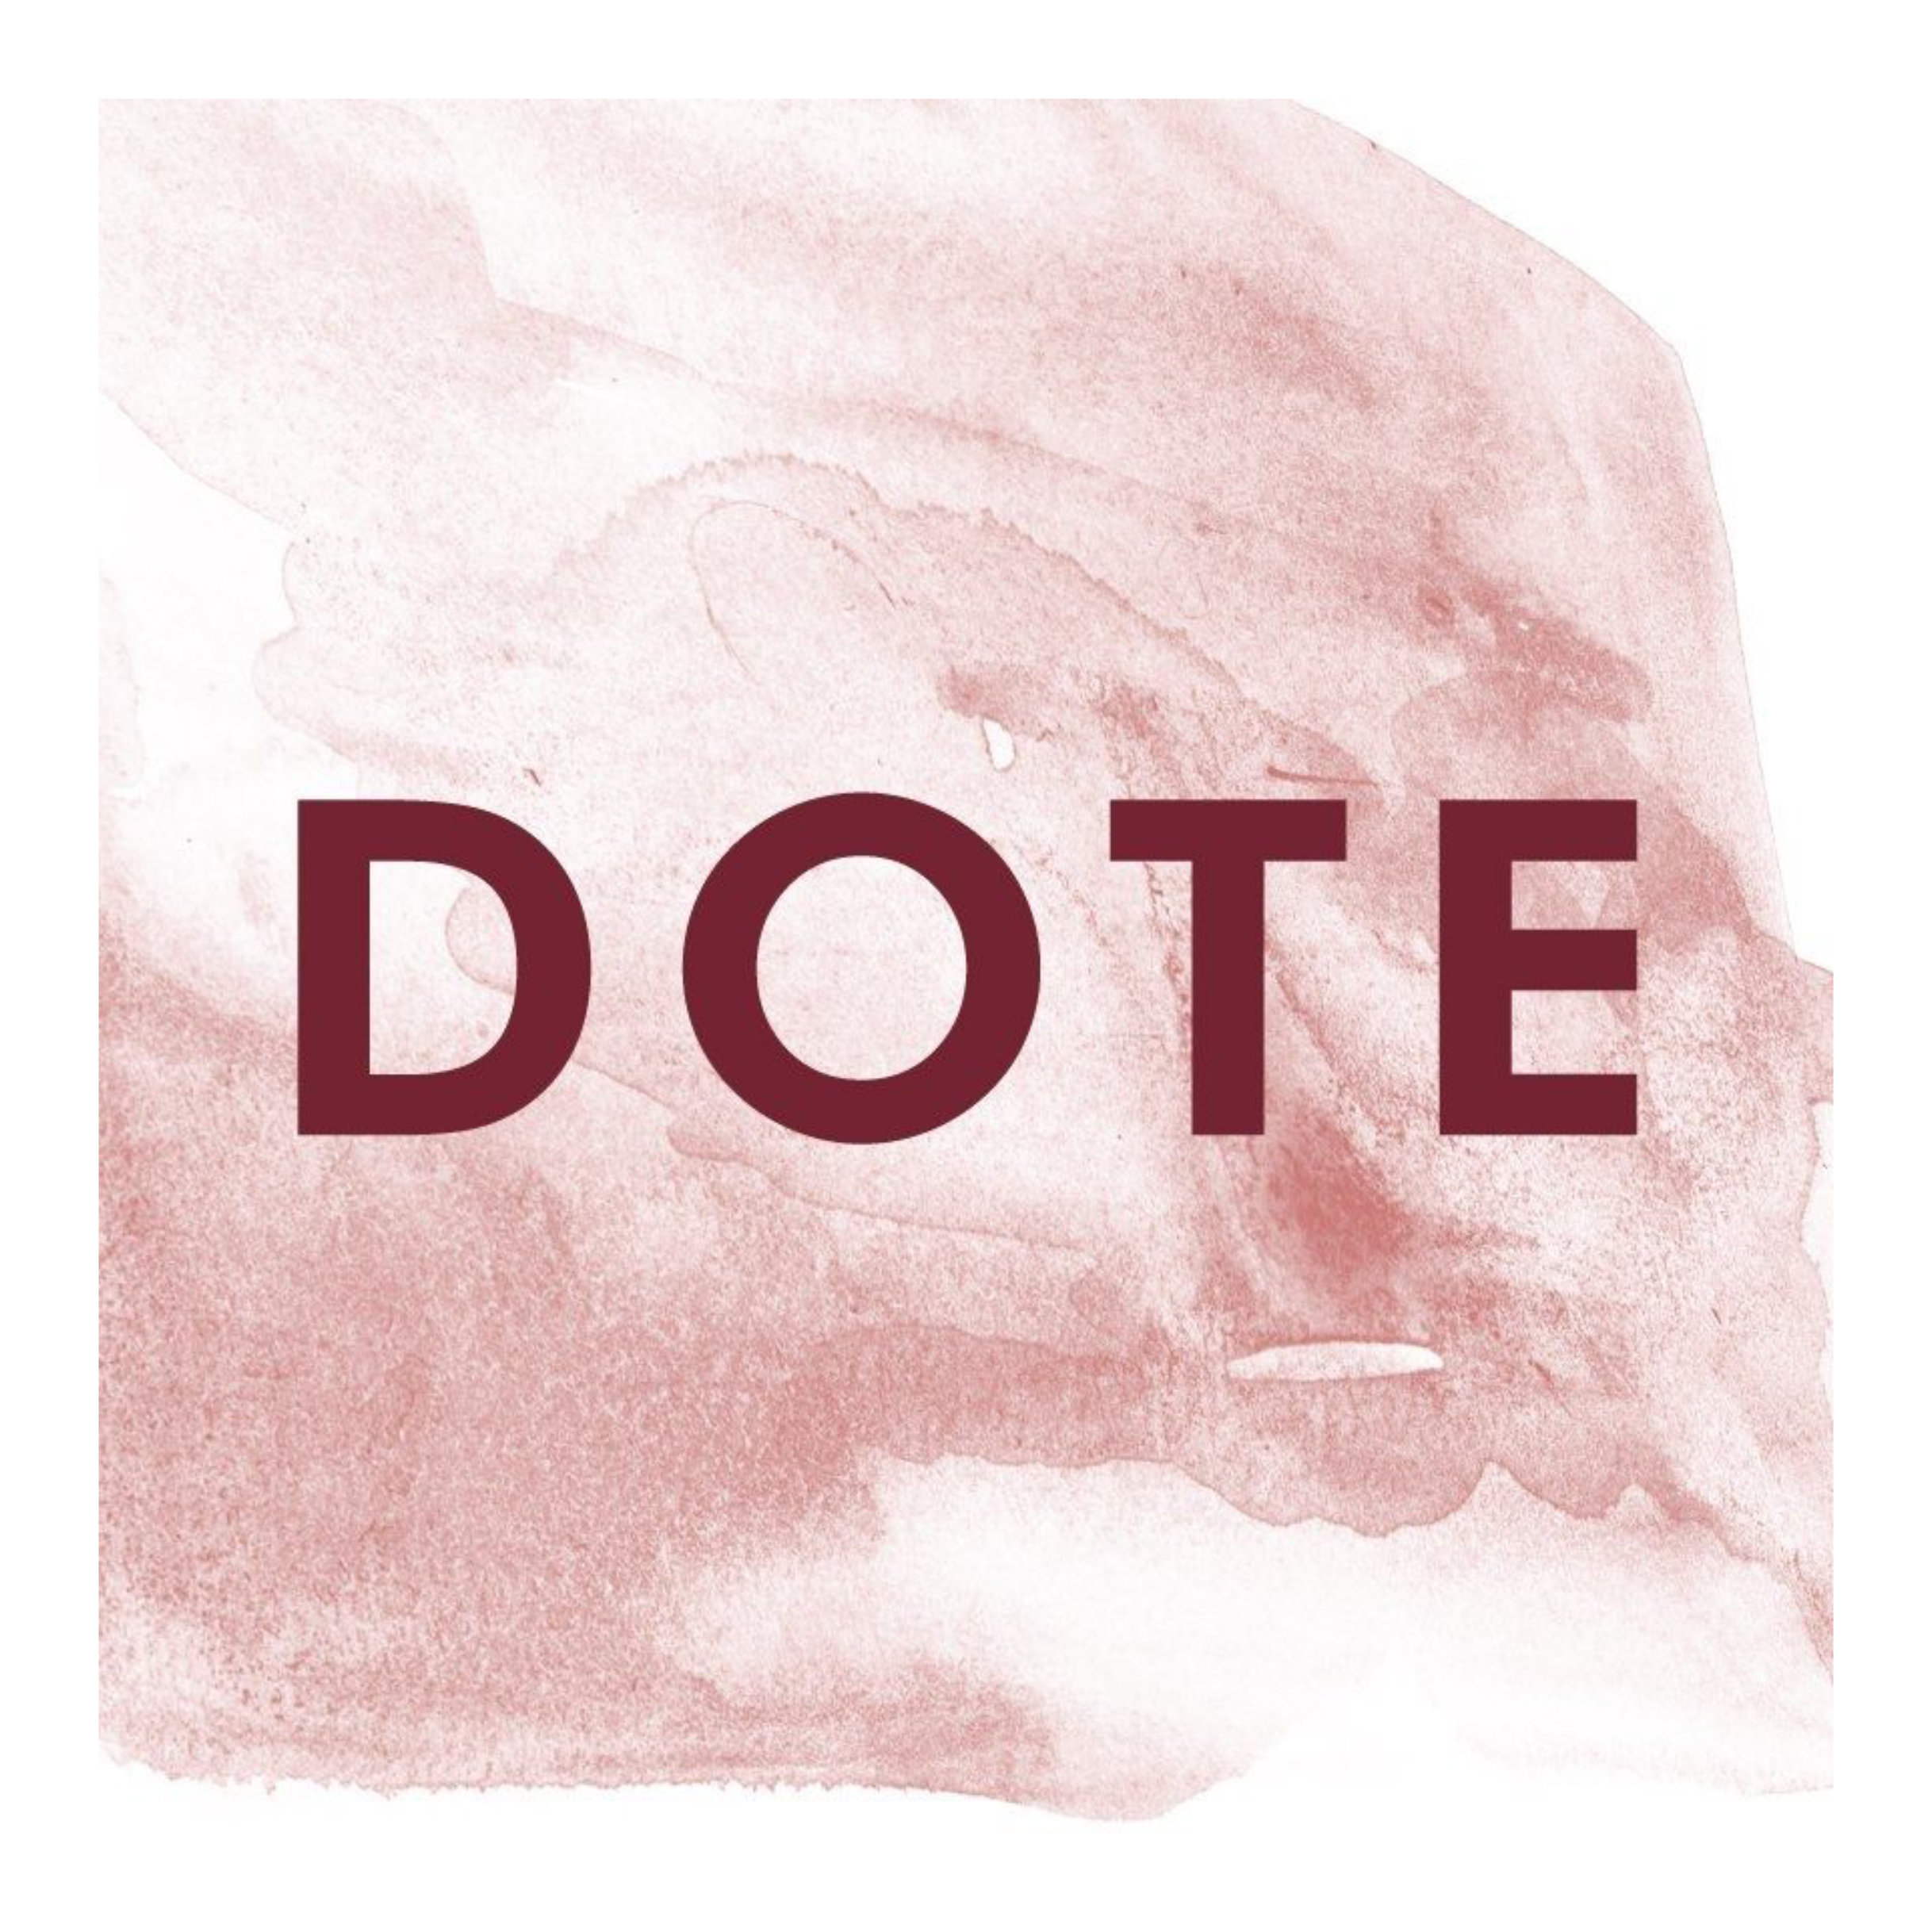 DOTE MAGAZINE - INTERVIEW Winter 2018 // Publication: Nail Enamels in their consciously curated gift guide